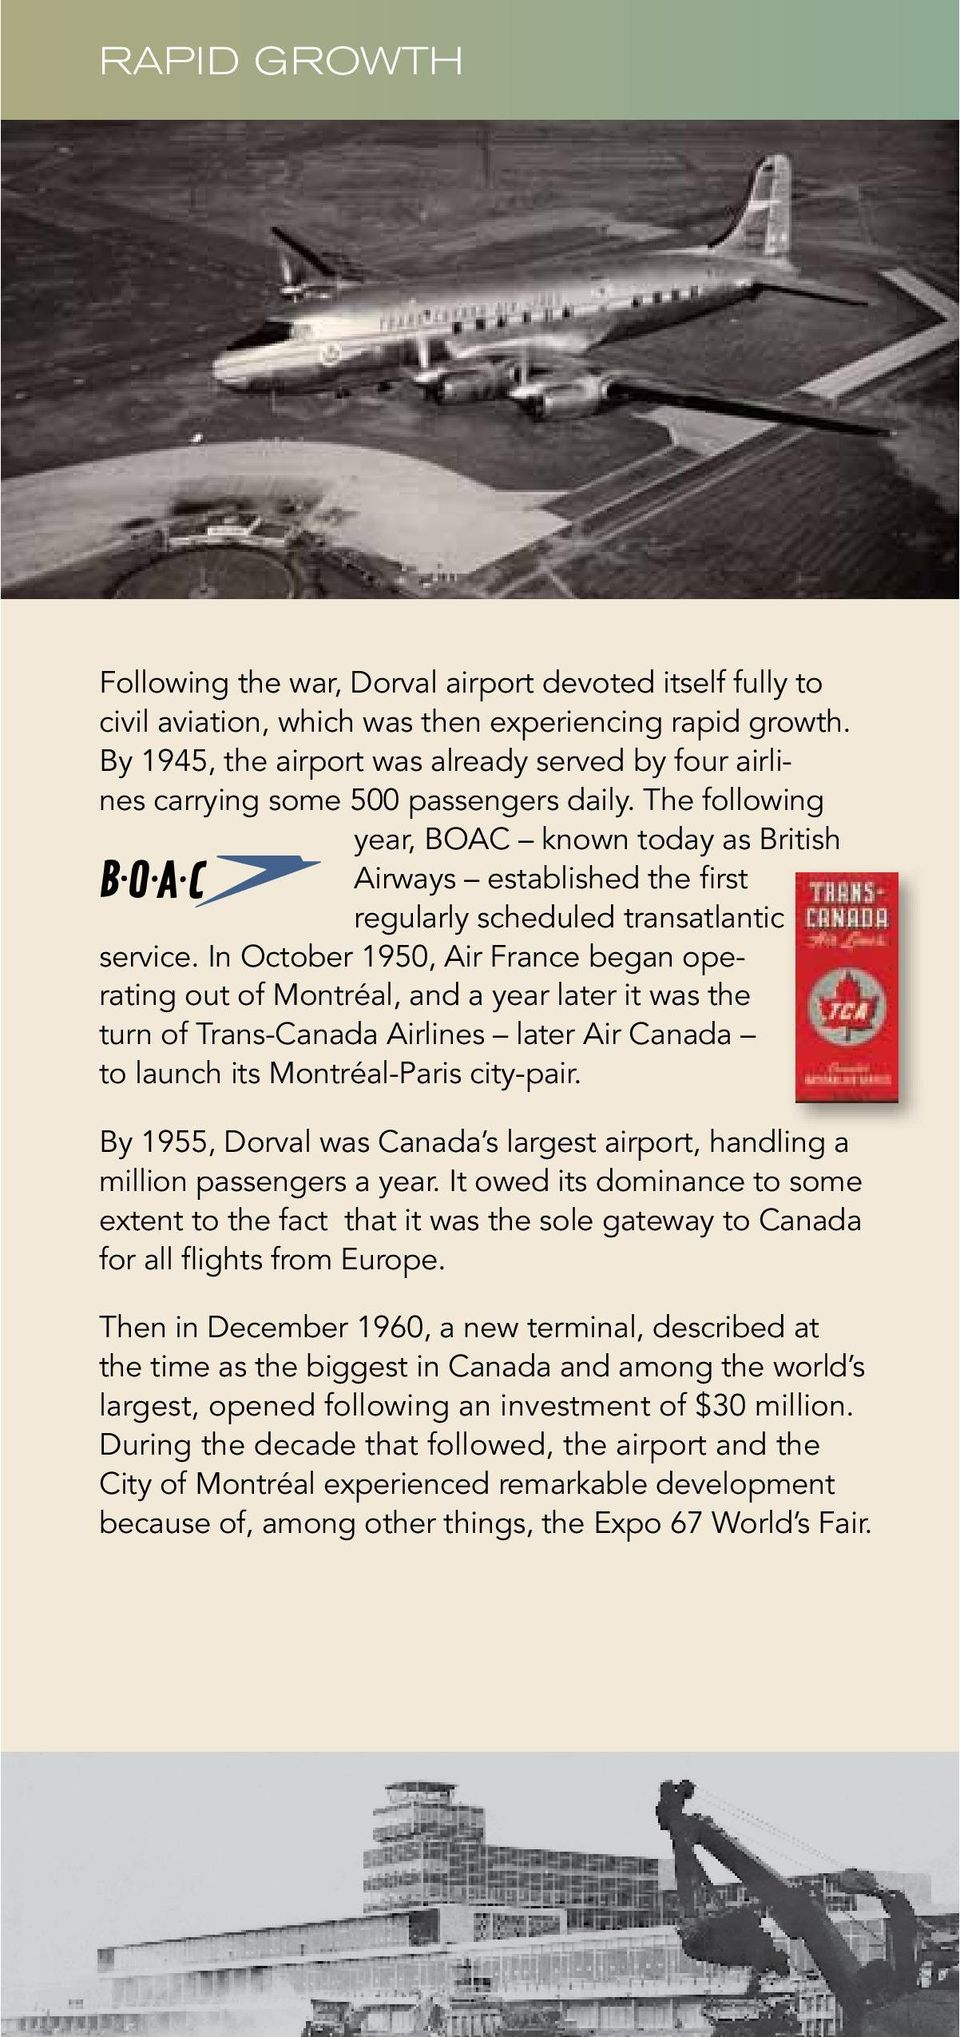 The following year, BOAC known today as British Airways established the first regularly scheduled transatlantic service.